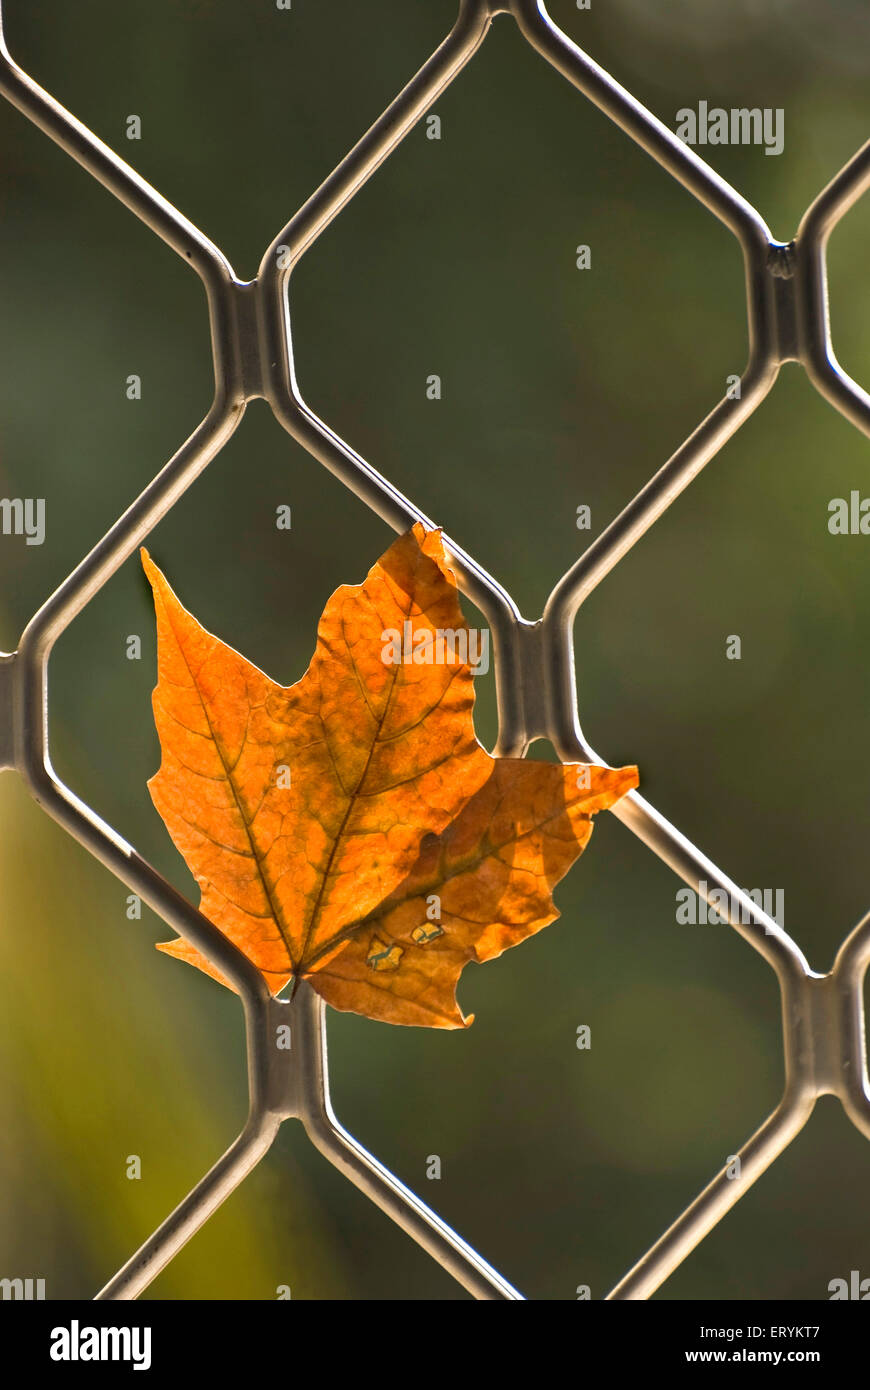 Maple leaf dried and withered in autumn and trapped in window grill - Stock Image